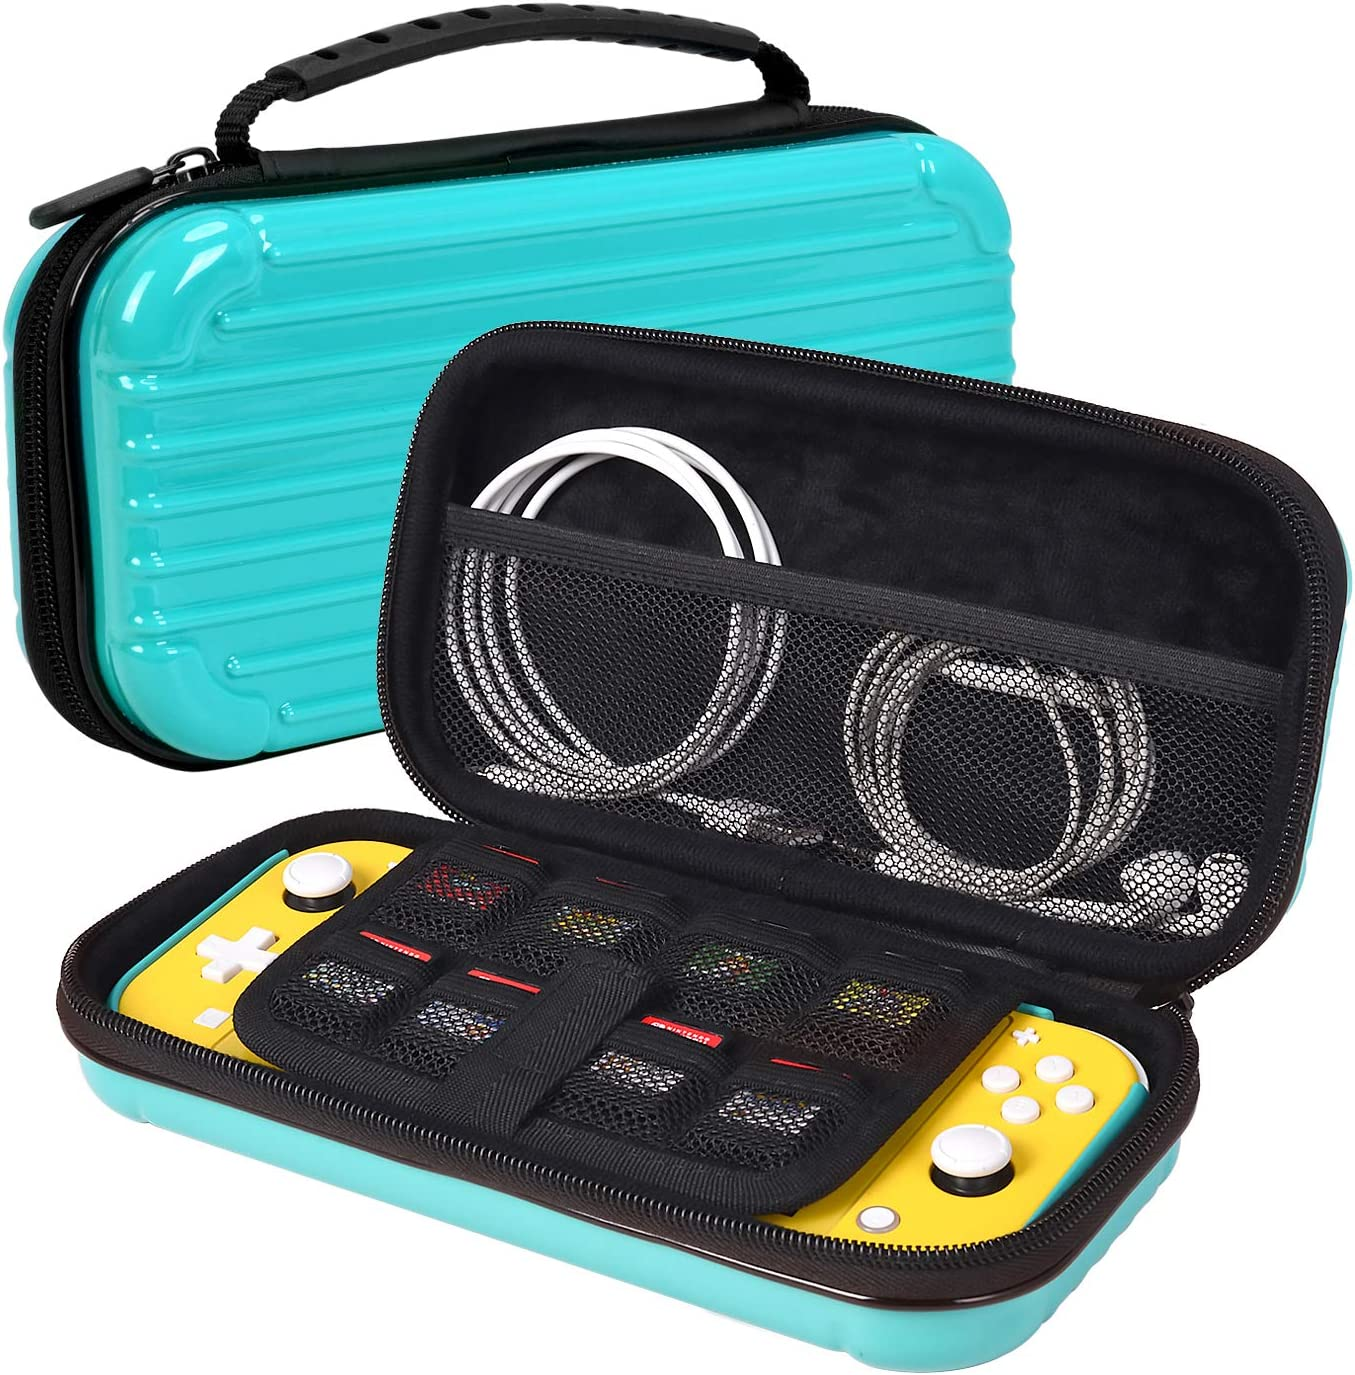 iHosok Carrying case for Nintendo Switch lite Console - Portable Travel Hard Shell Protective case with 8 Game Card Slots & Storage for Accessories-Turquoise